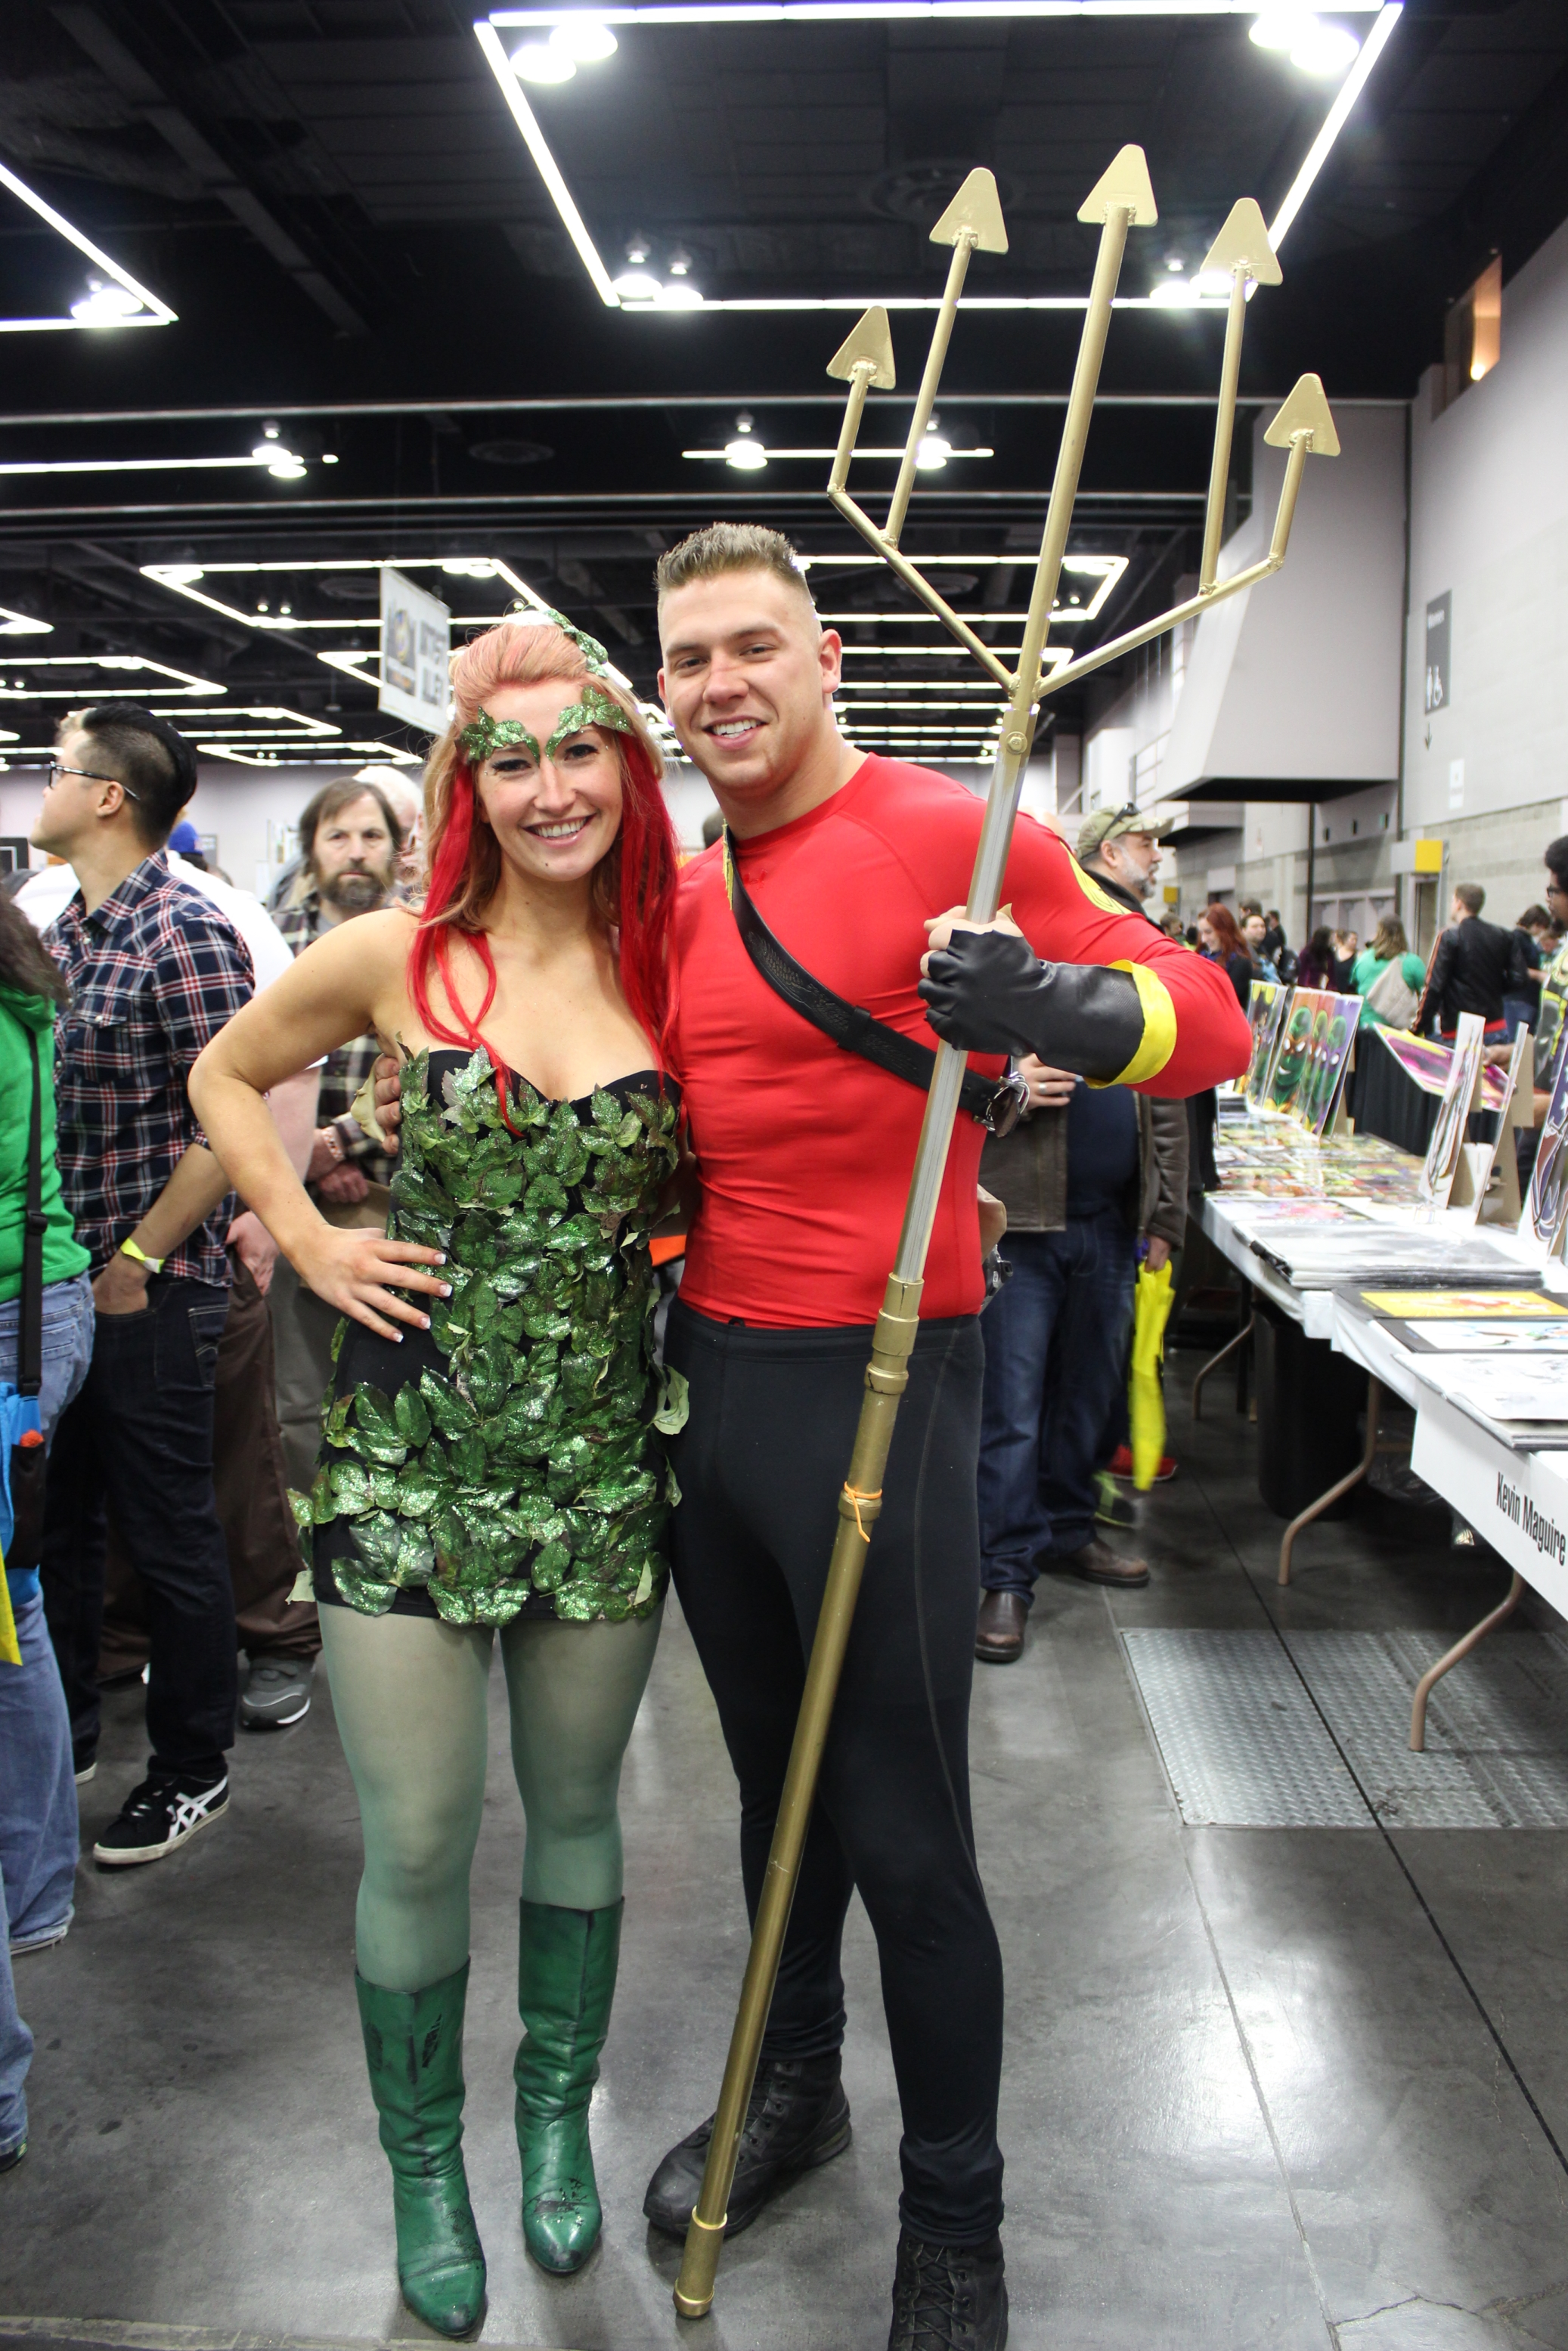 cosplayers at Portland Comic Con 2014